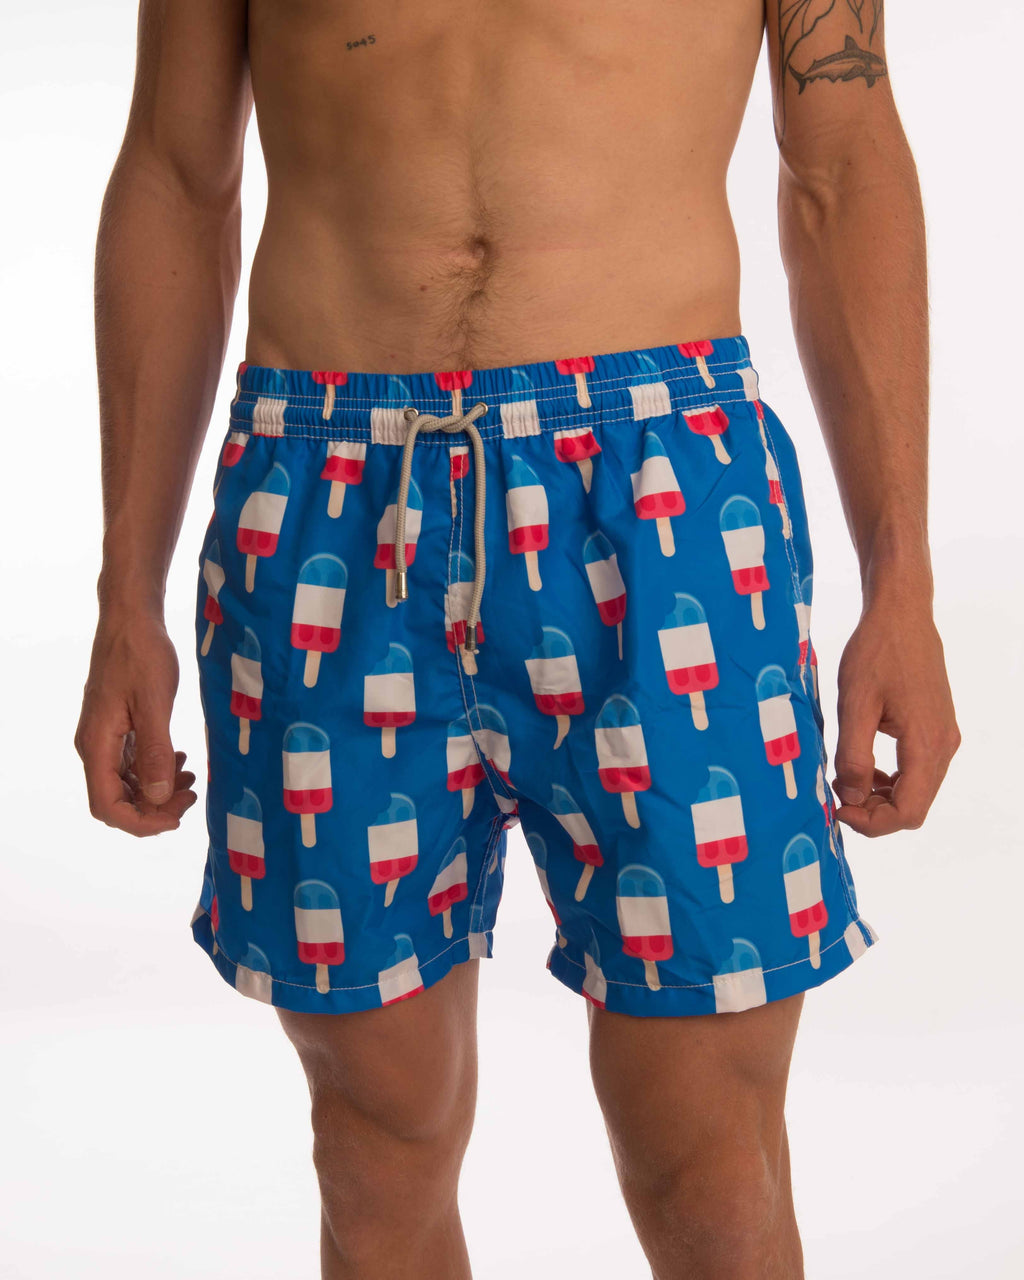 Popsicle Board Shorts